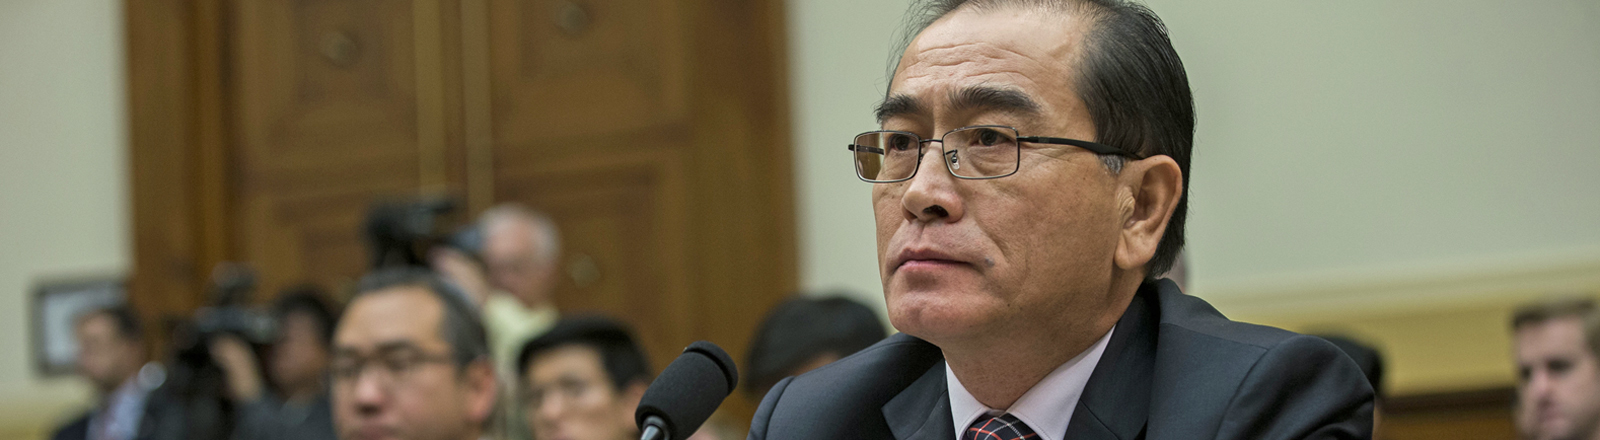 Former Deputy Chief of Mission, Embassy of the Democratic People's Republic of Korea in the United Kingdom, a North Korean defector to South Korea, Thae Yong-ho testifies before the United States House of Representatives Committee on Foreign Affairs on Capitol Hill in Washington, D.C. on November 1st, 2017. Credit: Alex Edelman / CNP Foto: Alex Edelman/Consolidated/dpa